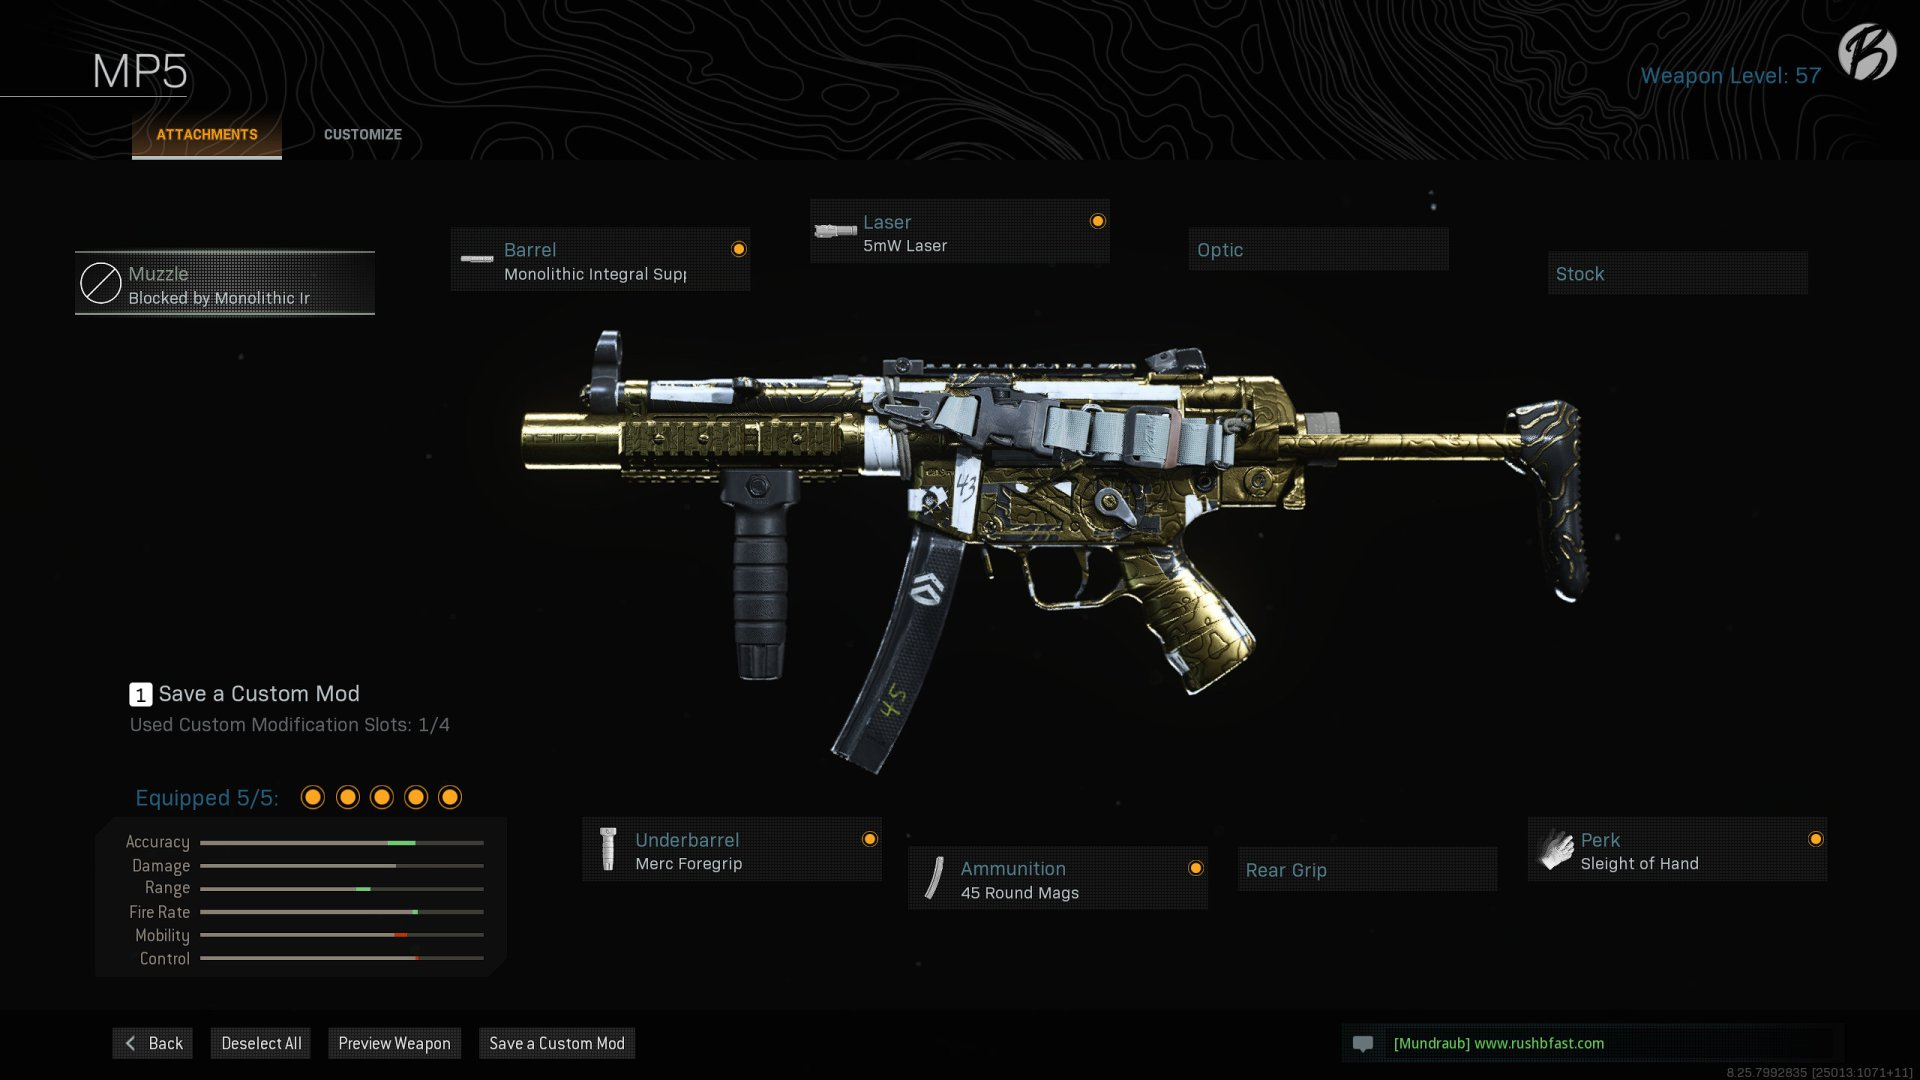 MP5: Monolithic Integral Suppressor, 5mW Laser, Merc Foregrip, 45 Round Mags, Sleight of Hand